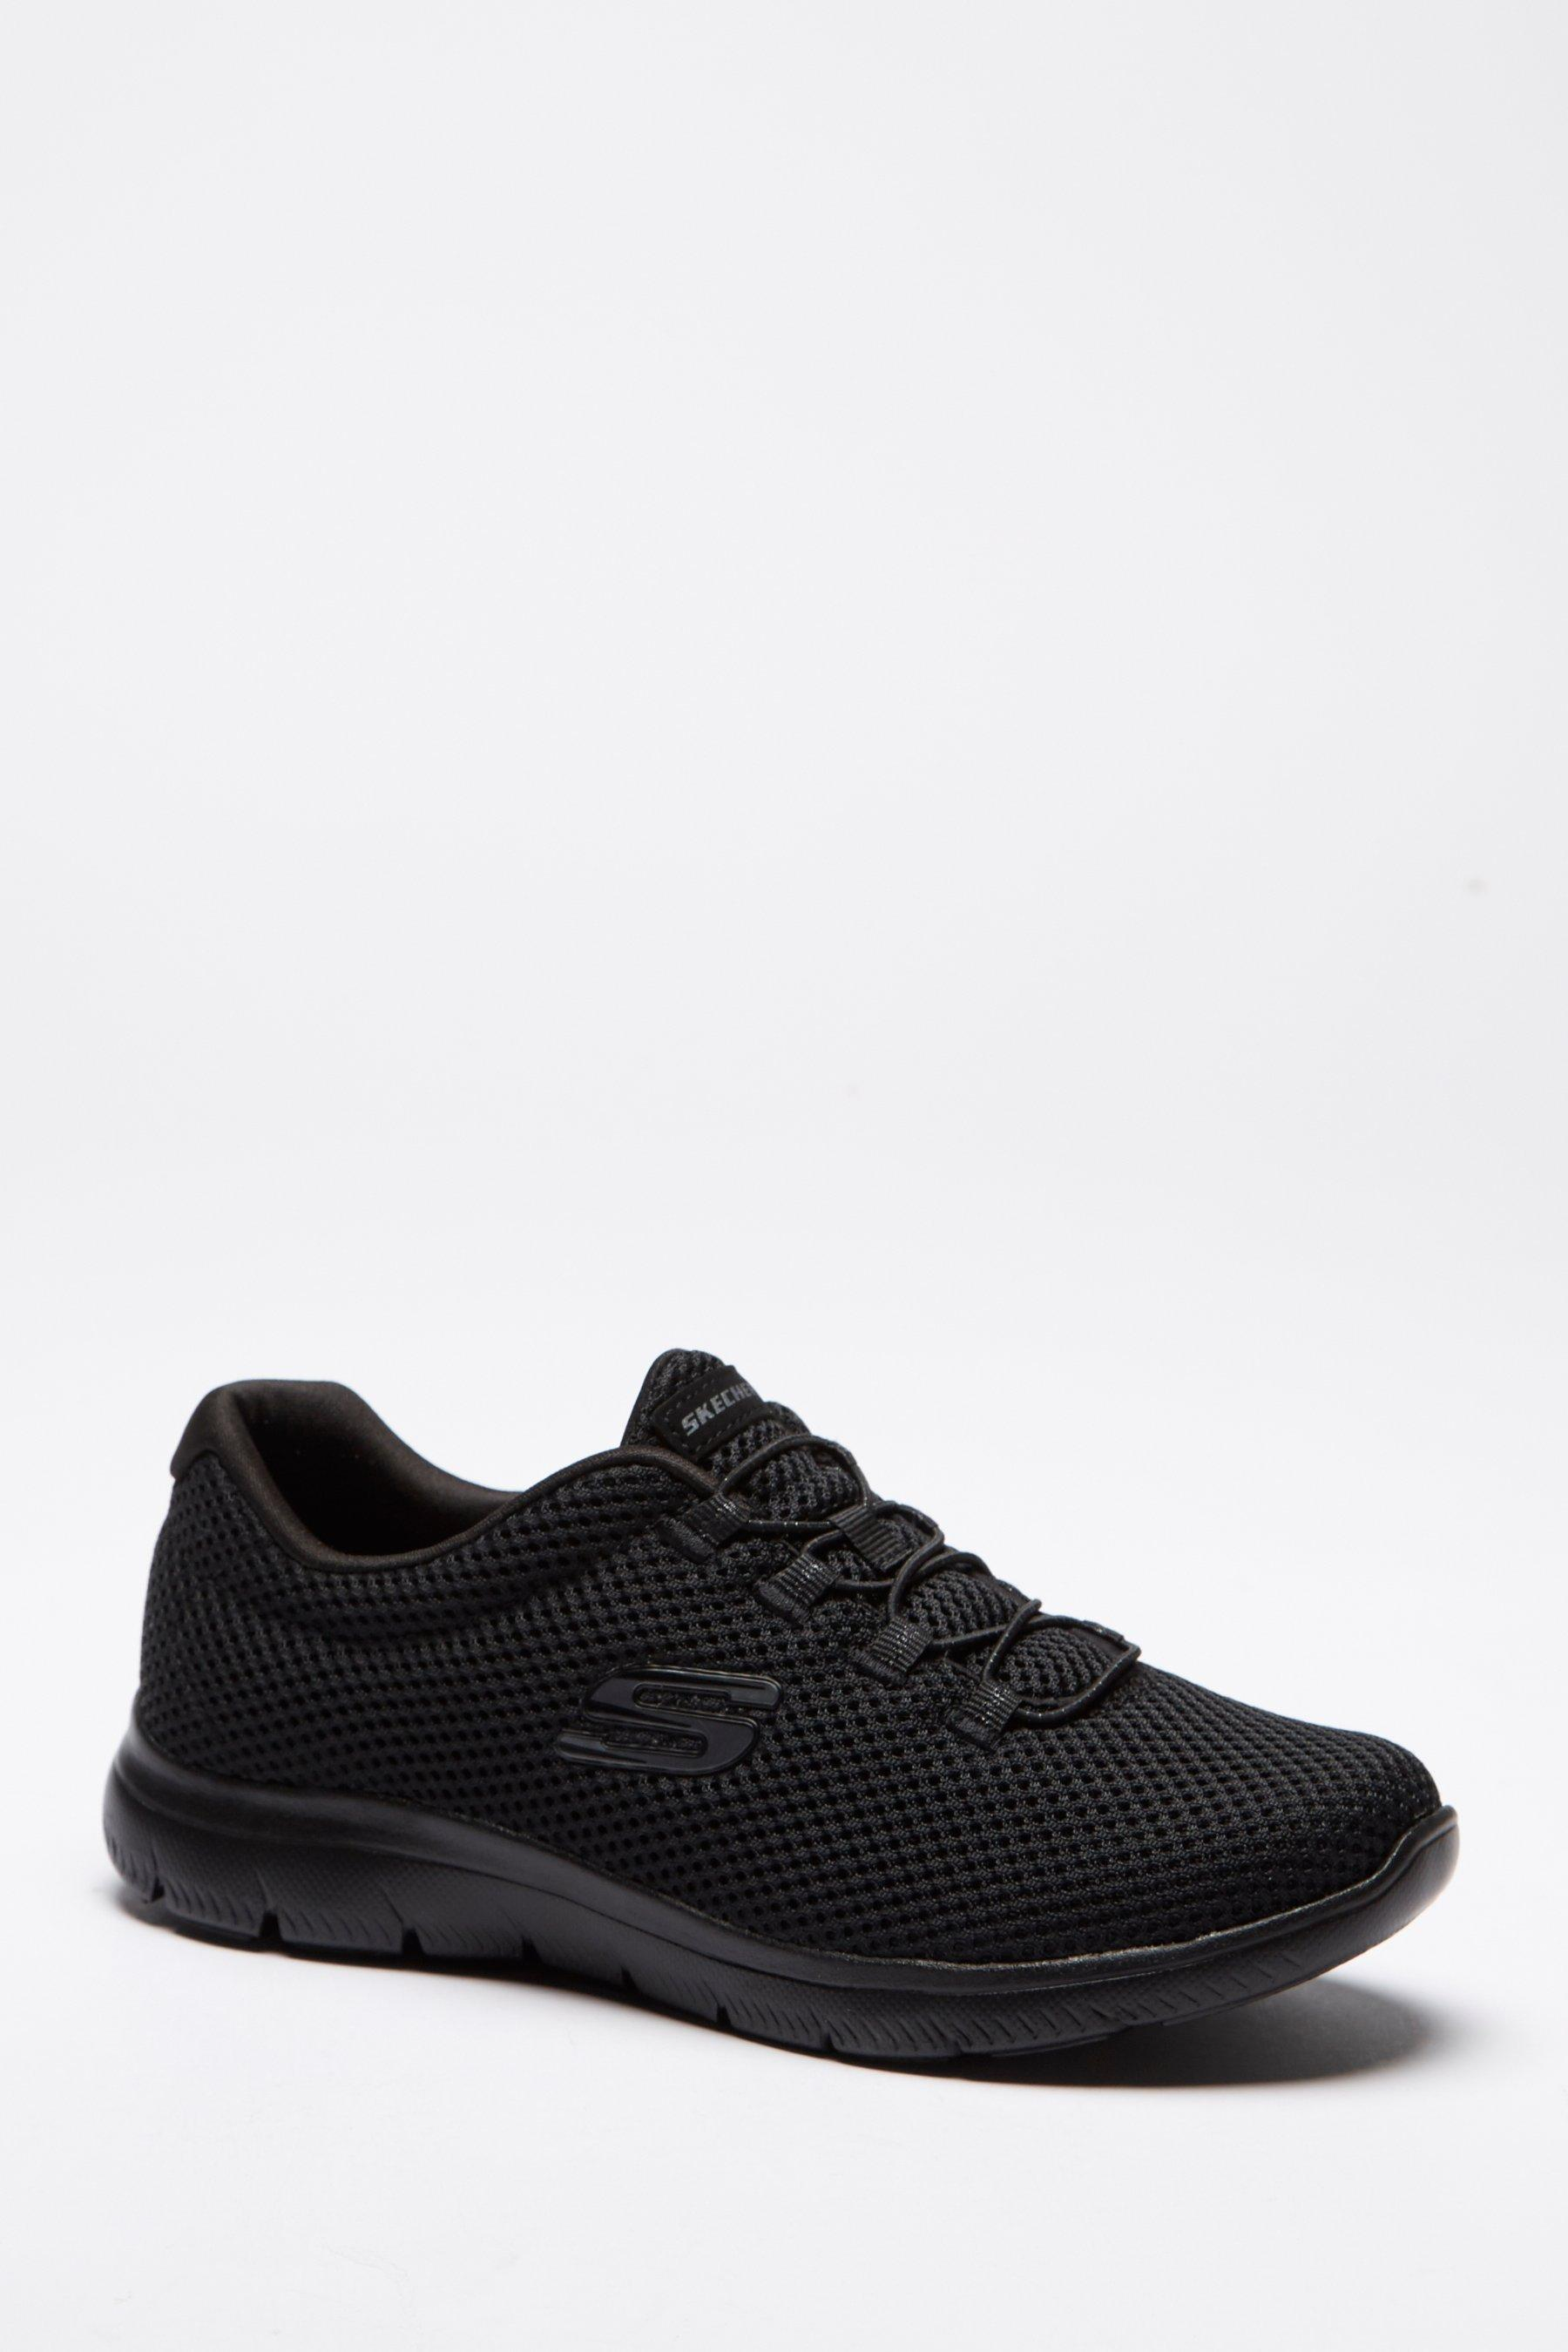 Skechers Summits Bungee Lace Trainers